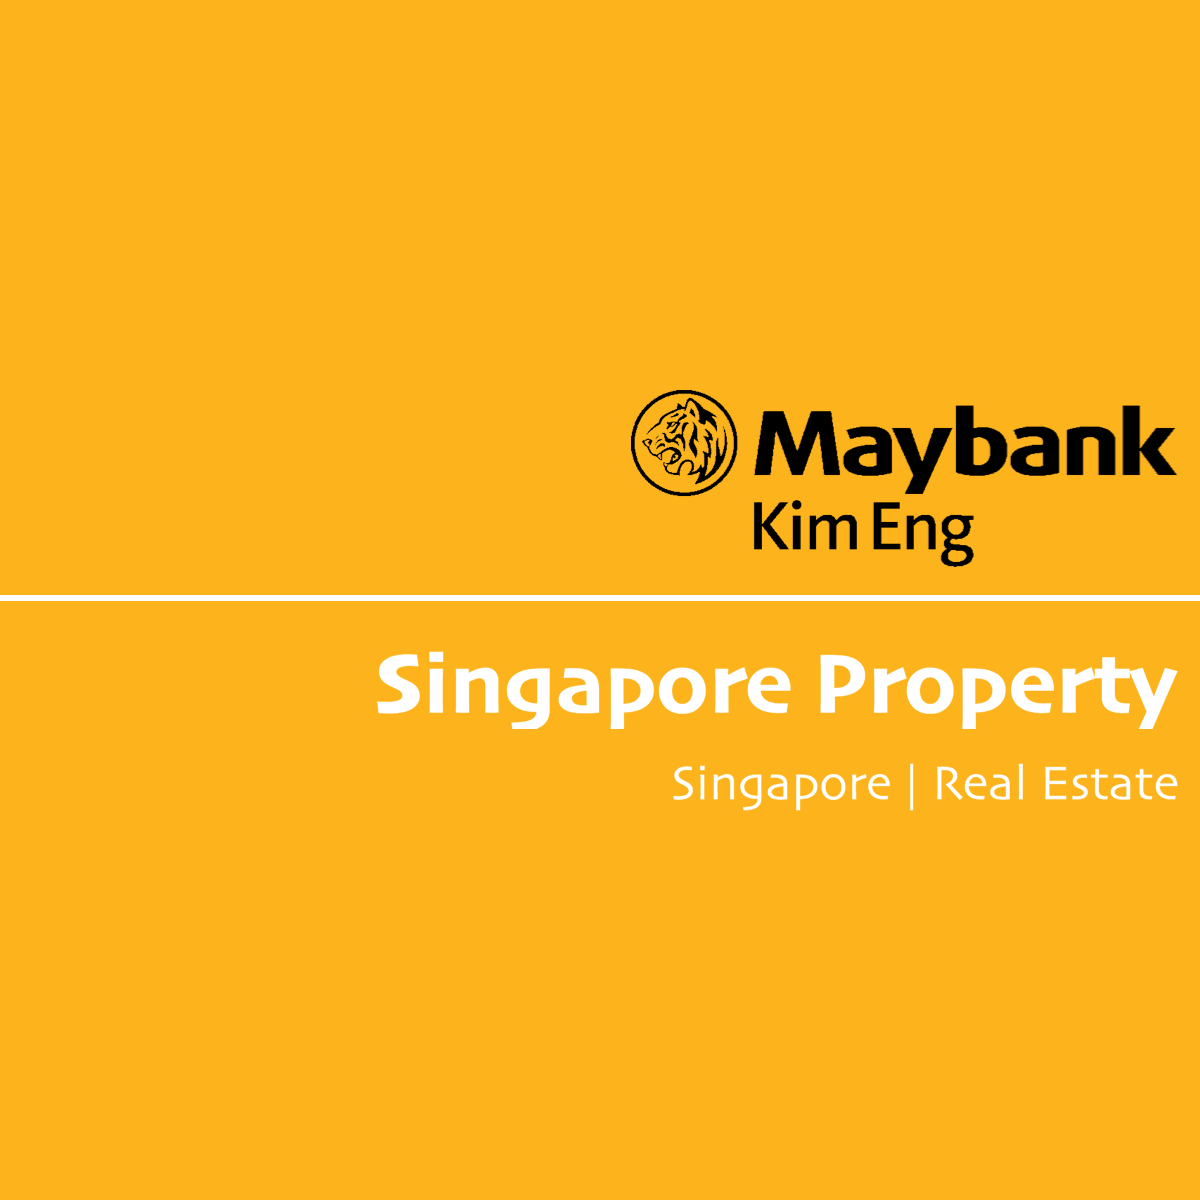 Singapore Property - Maybank Kim Eng 2018-04-10: Rising Home Prices